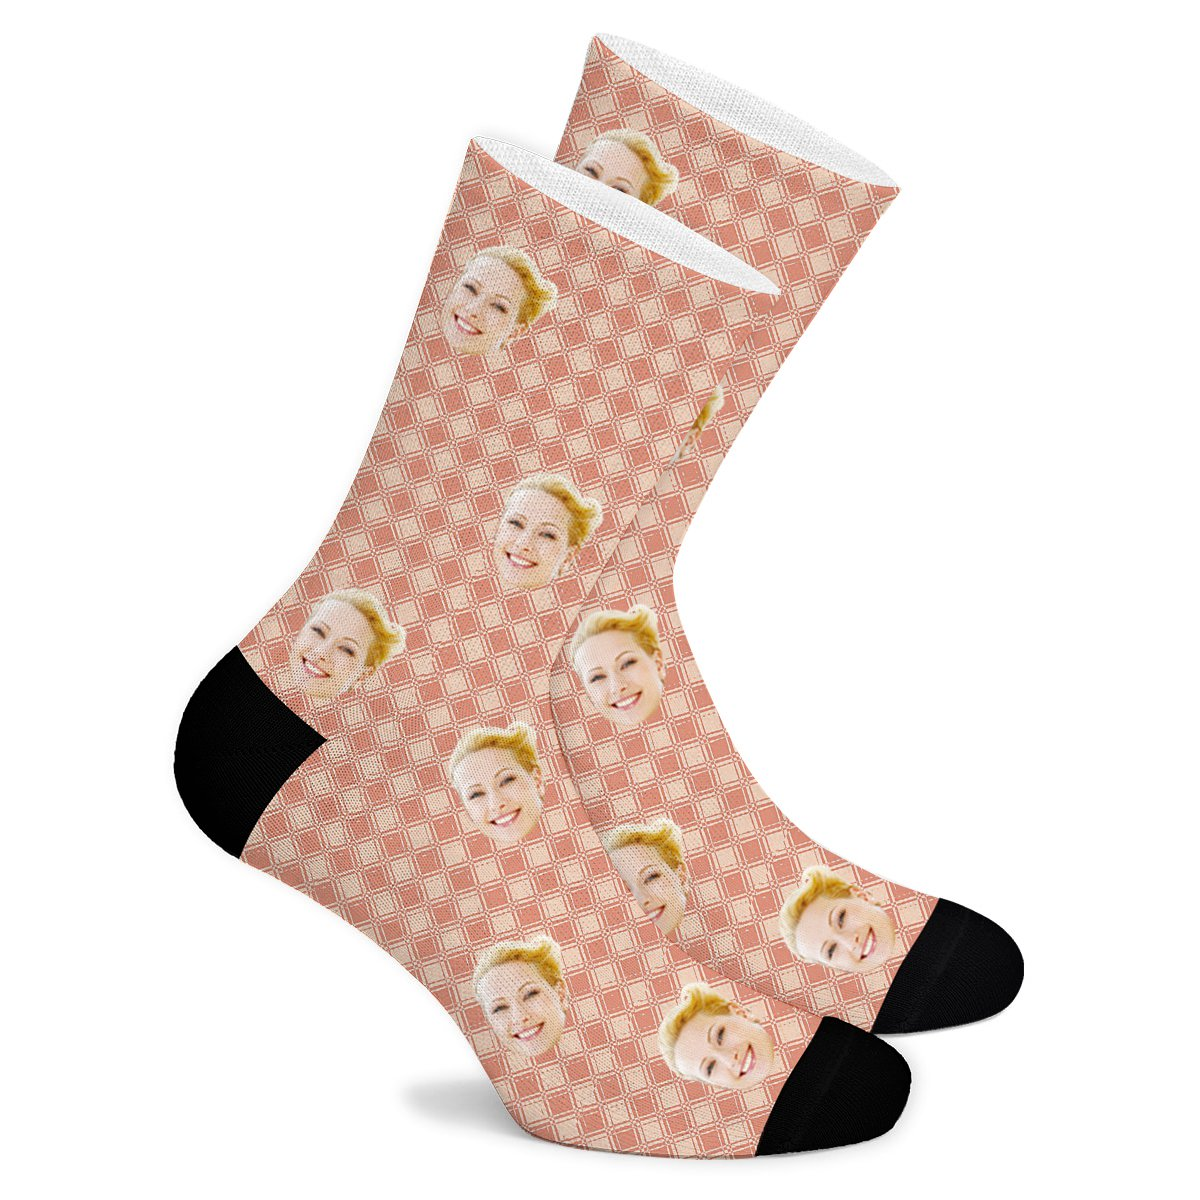 Square Pattern Custom Socks - Make Face Socks